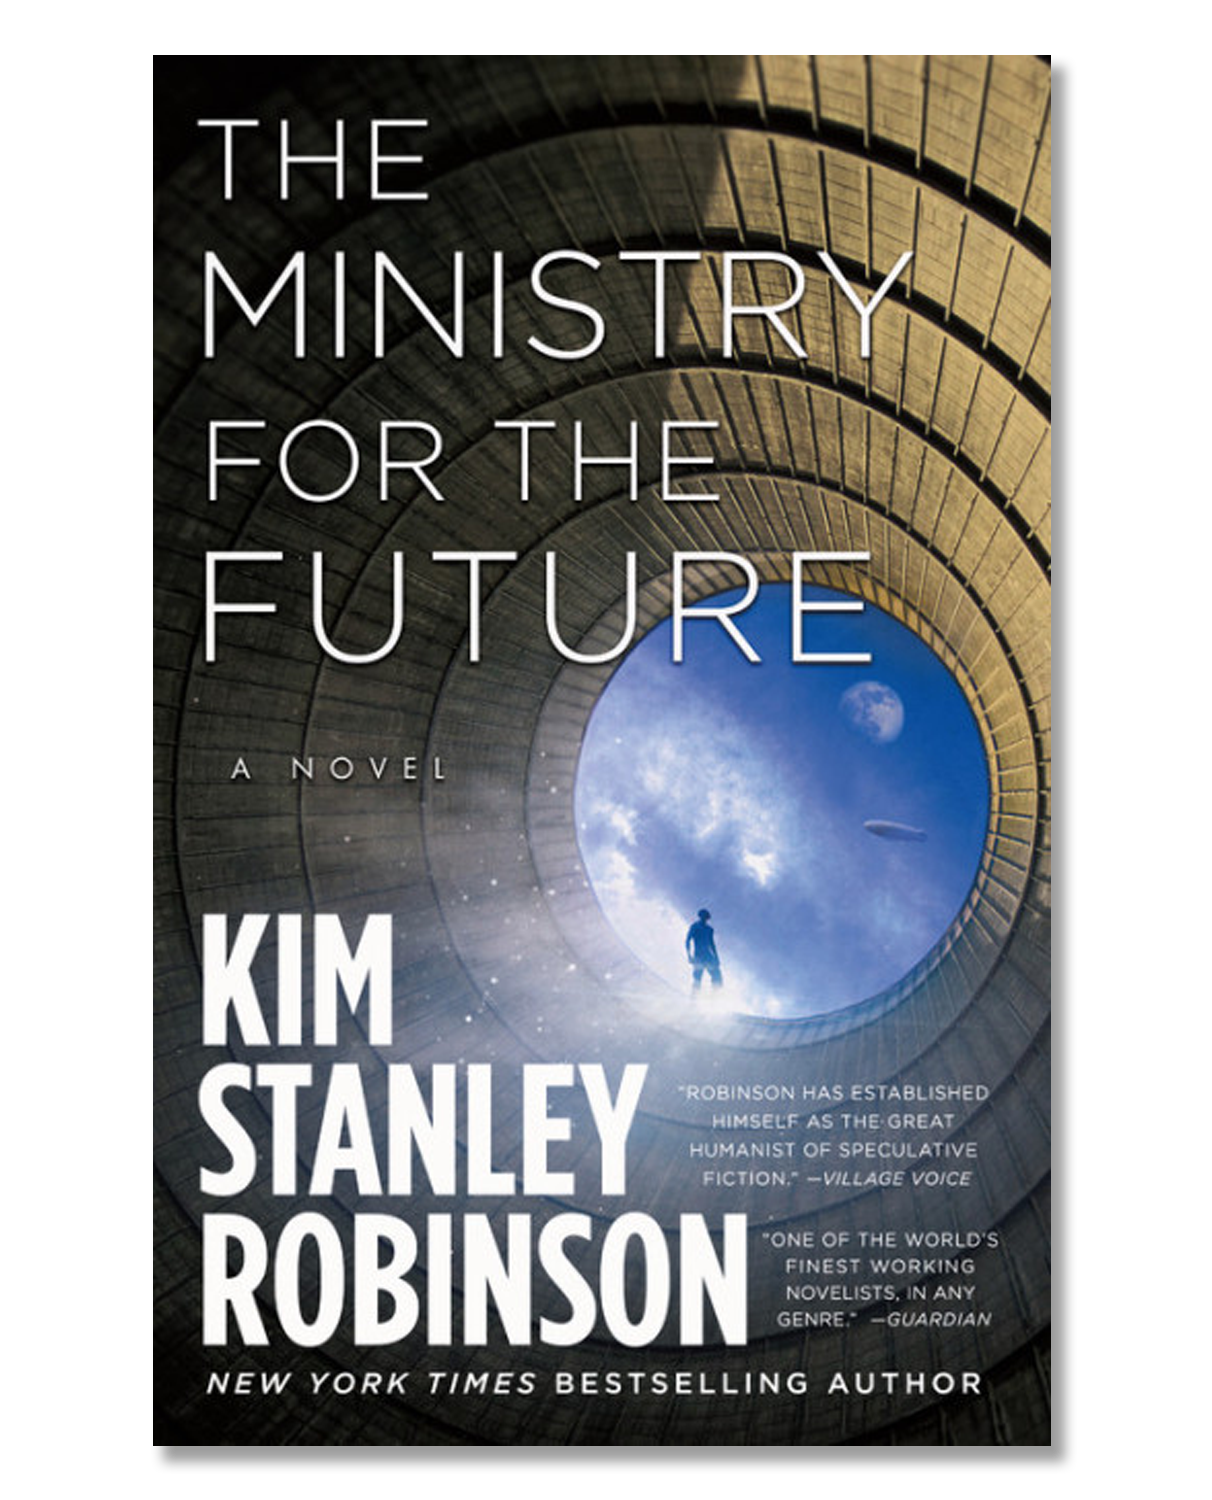 """Reviewed: """"How to Avoid a Climate Disaster"""" by Bill Gates, """"The Ministry for the Future"""" by Kim Stanley Robinson, and """"Under a White Sky"""" by Elizabeth Kolbert"""